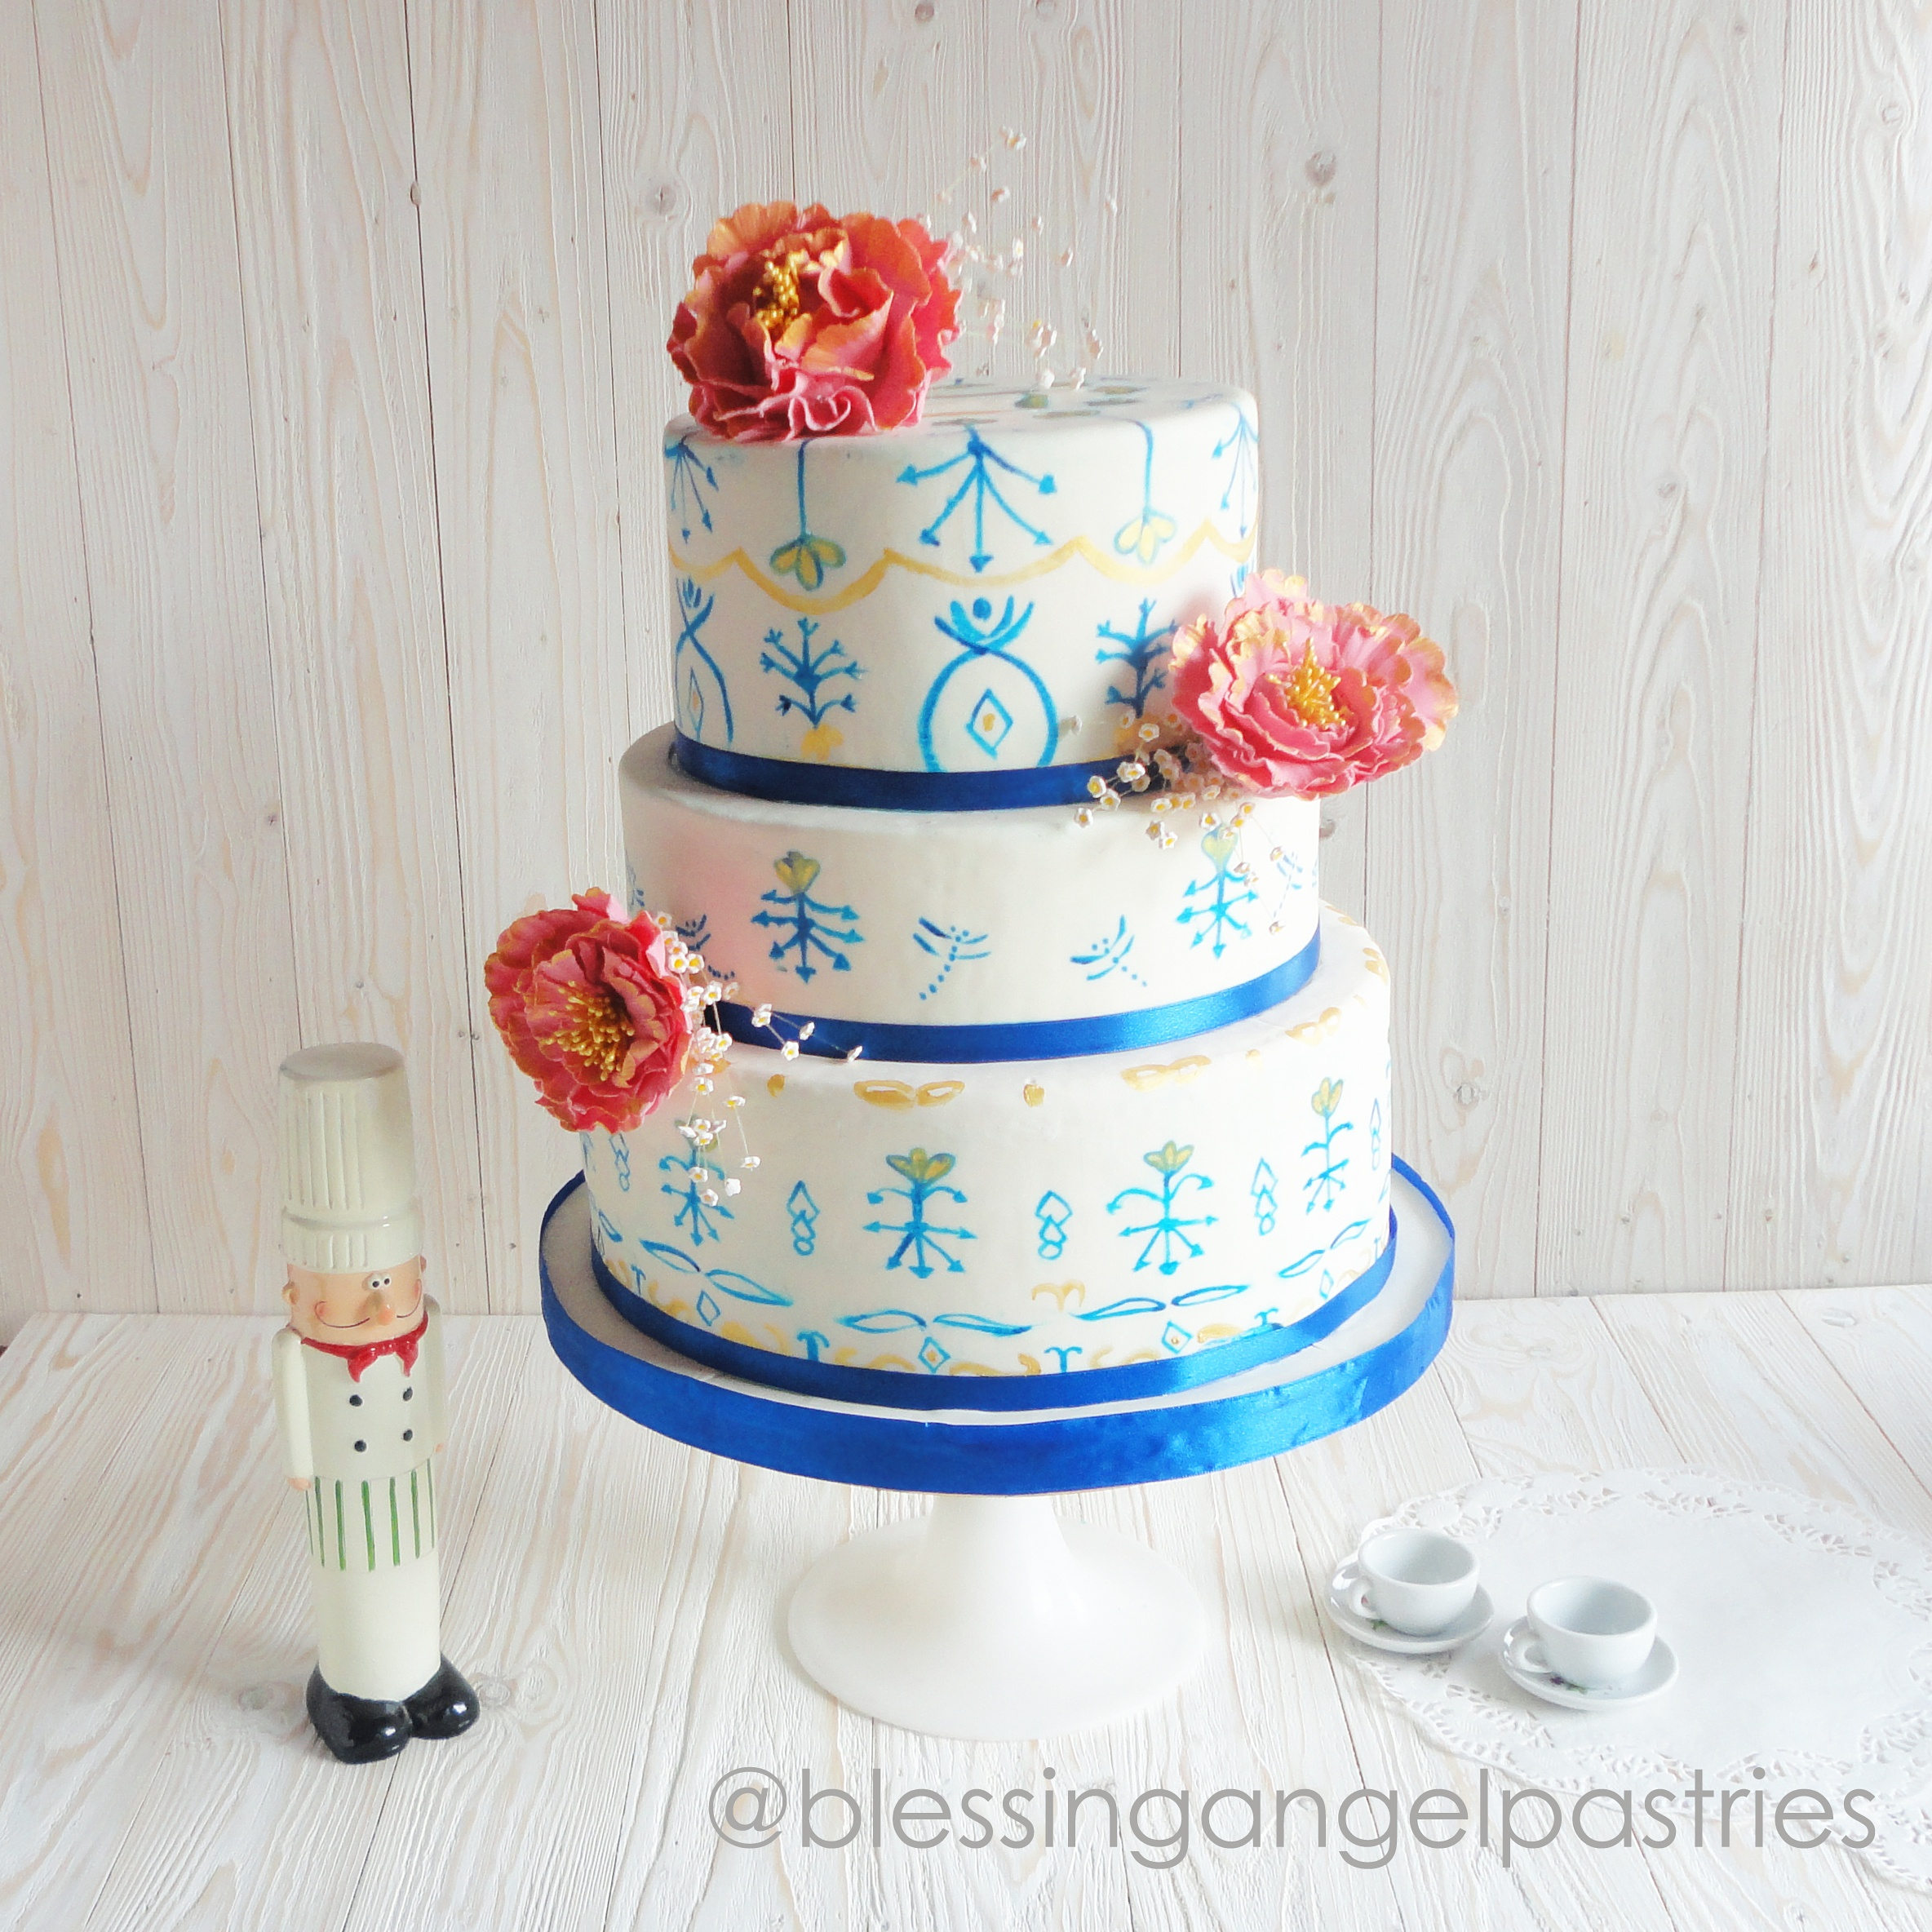 Blessing Angel Pastries | Wedding Catering in Tangerang | Bridestory.com